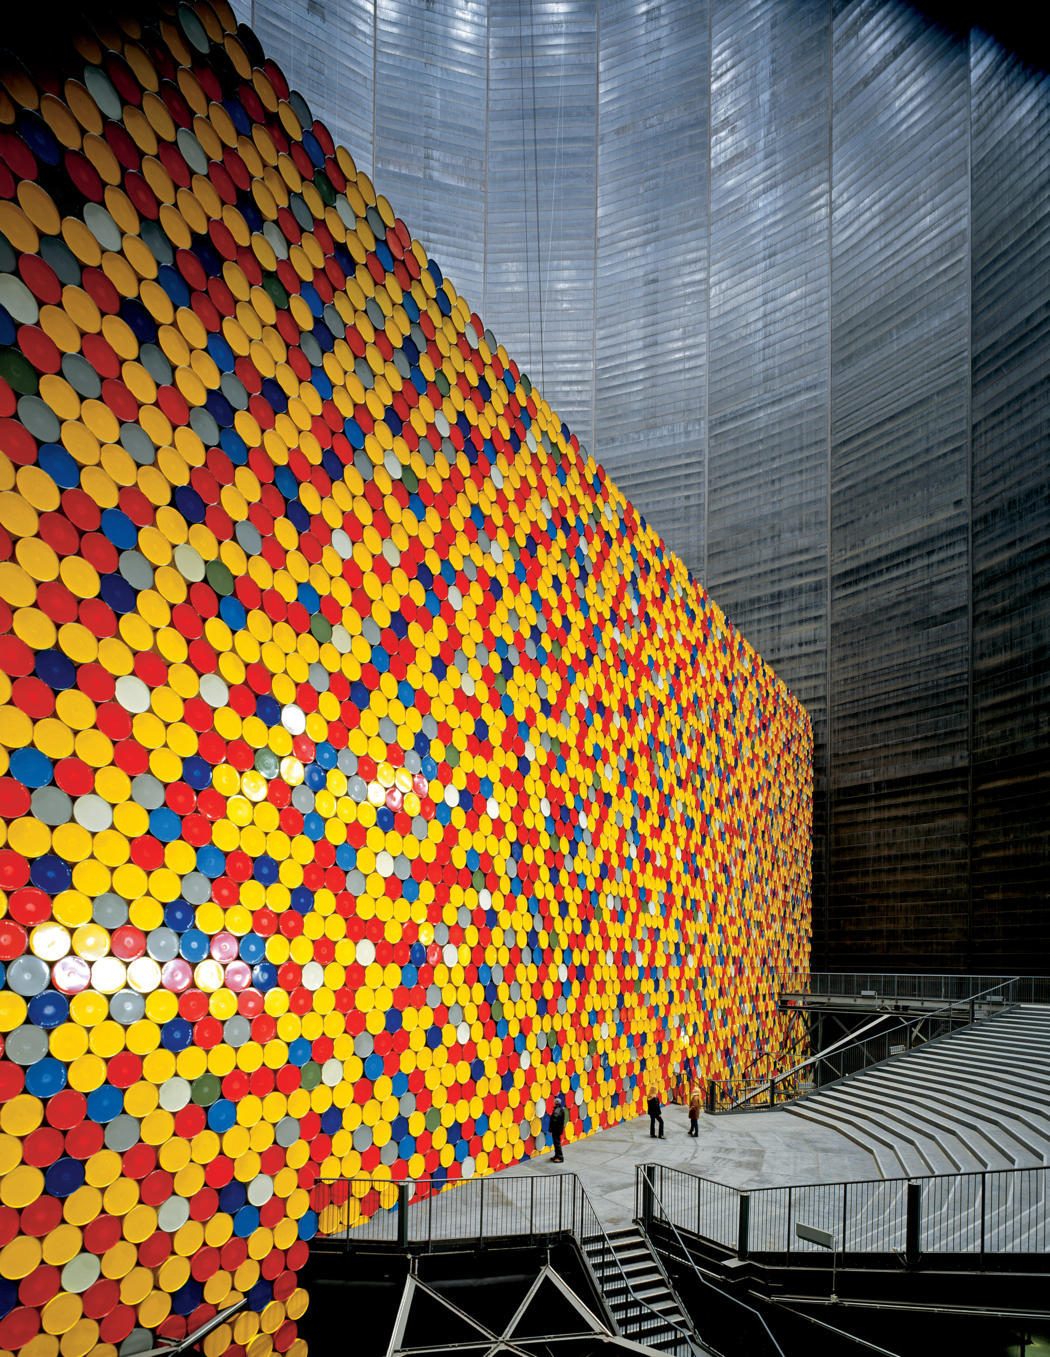 devidsketchbook:  Christo and Jeanne-Claude The Wall - 13,000 Oil Barrels, Gasometer, Oberhausen, Germany, 1998-99 Photo: Wolfgang Volz  The Gasometer, one of the largest gas tanks in the world, 360 feet (110 meters) high by 223 feet (68 meters) in diameter, was built in 1928 to store the gas (a by-product of the industrial production of iron ore). Christo and Jeanne-Claude were invited by IBA Emscher Park Organization (founded by the state of North Rhine-Westphalia in 1989 to improve the infrastructure of the Ruhrregion), to exhibit in the Gasometer in Oberhausen.